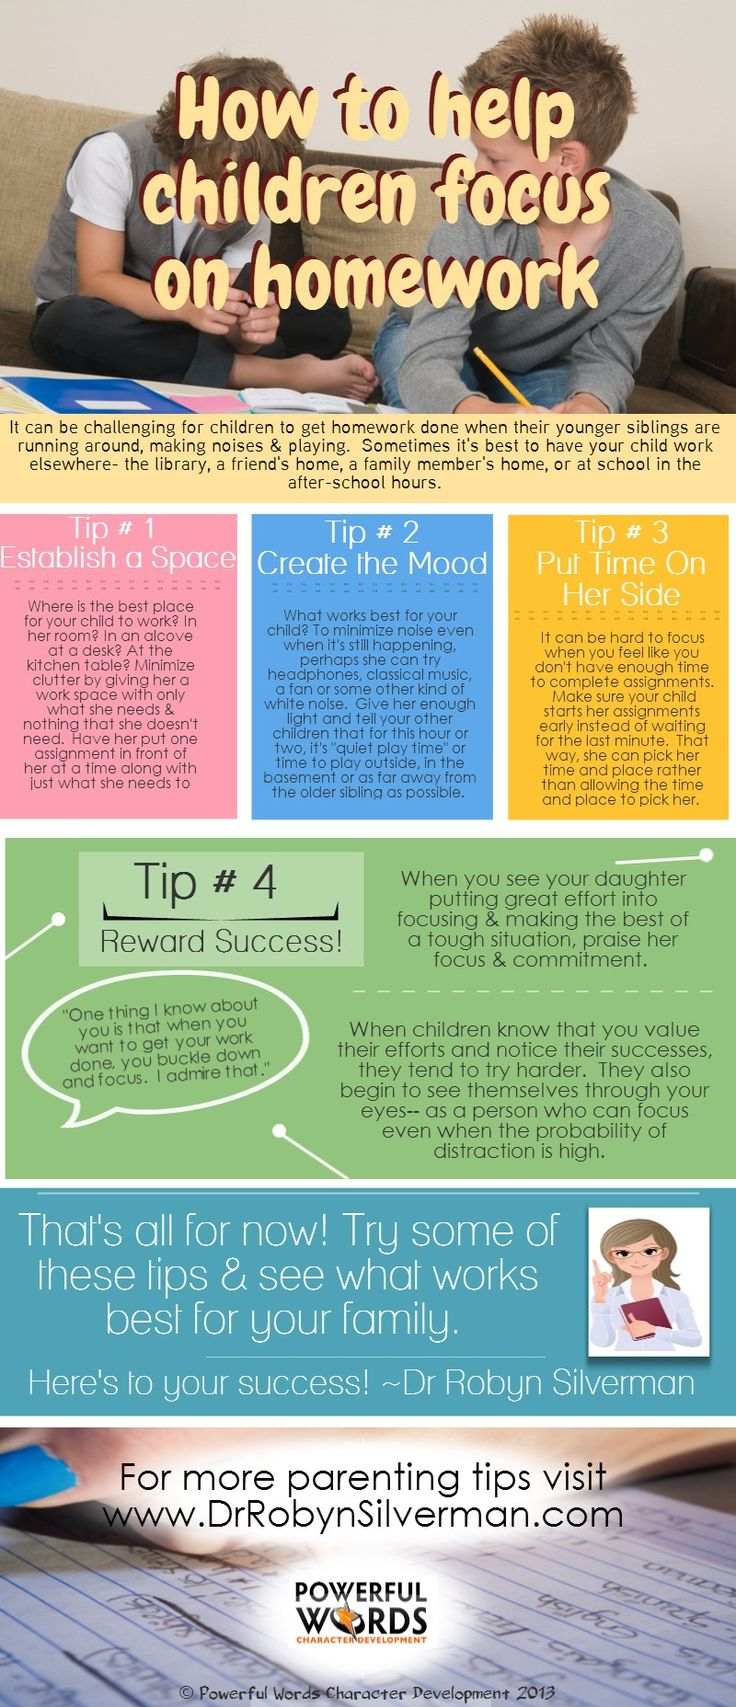 A great #Infographic for #parents who need tips on helping their children #focus on homework! http://www.drrobynsilverman.com/category/parenting-tips/